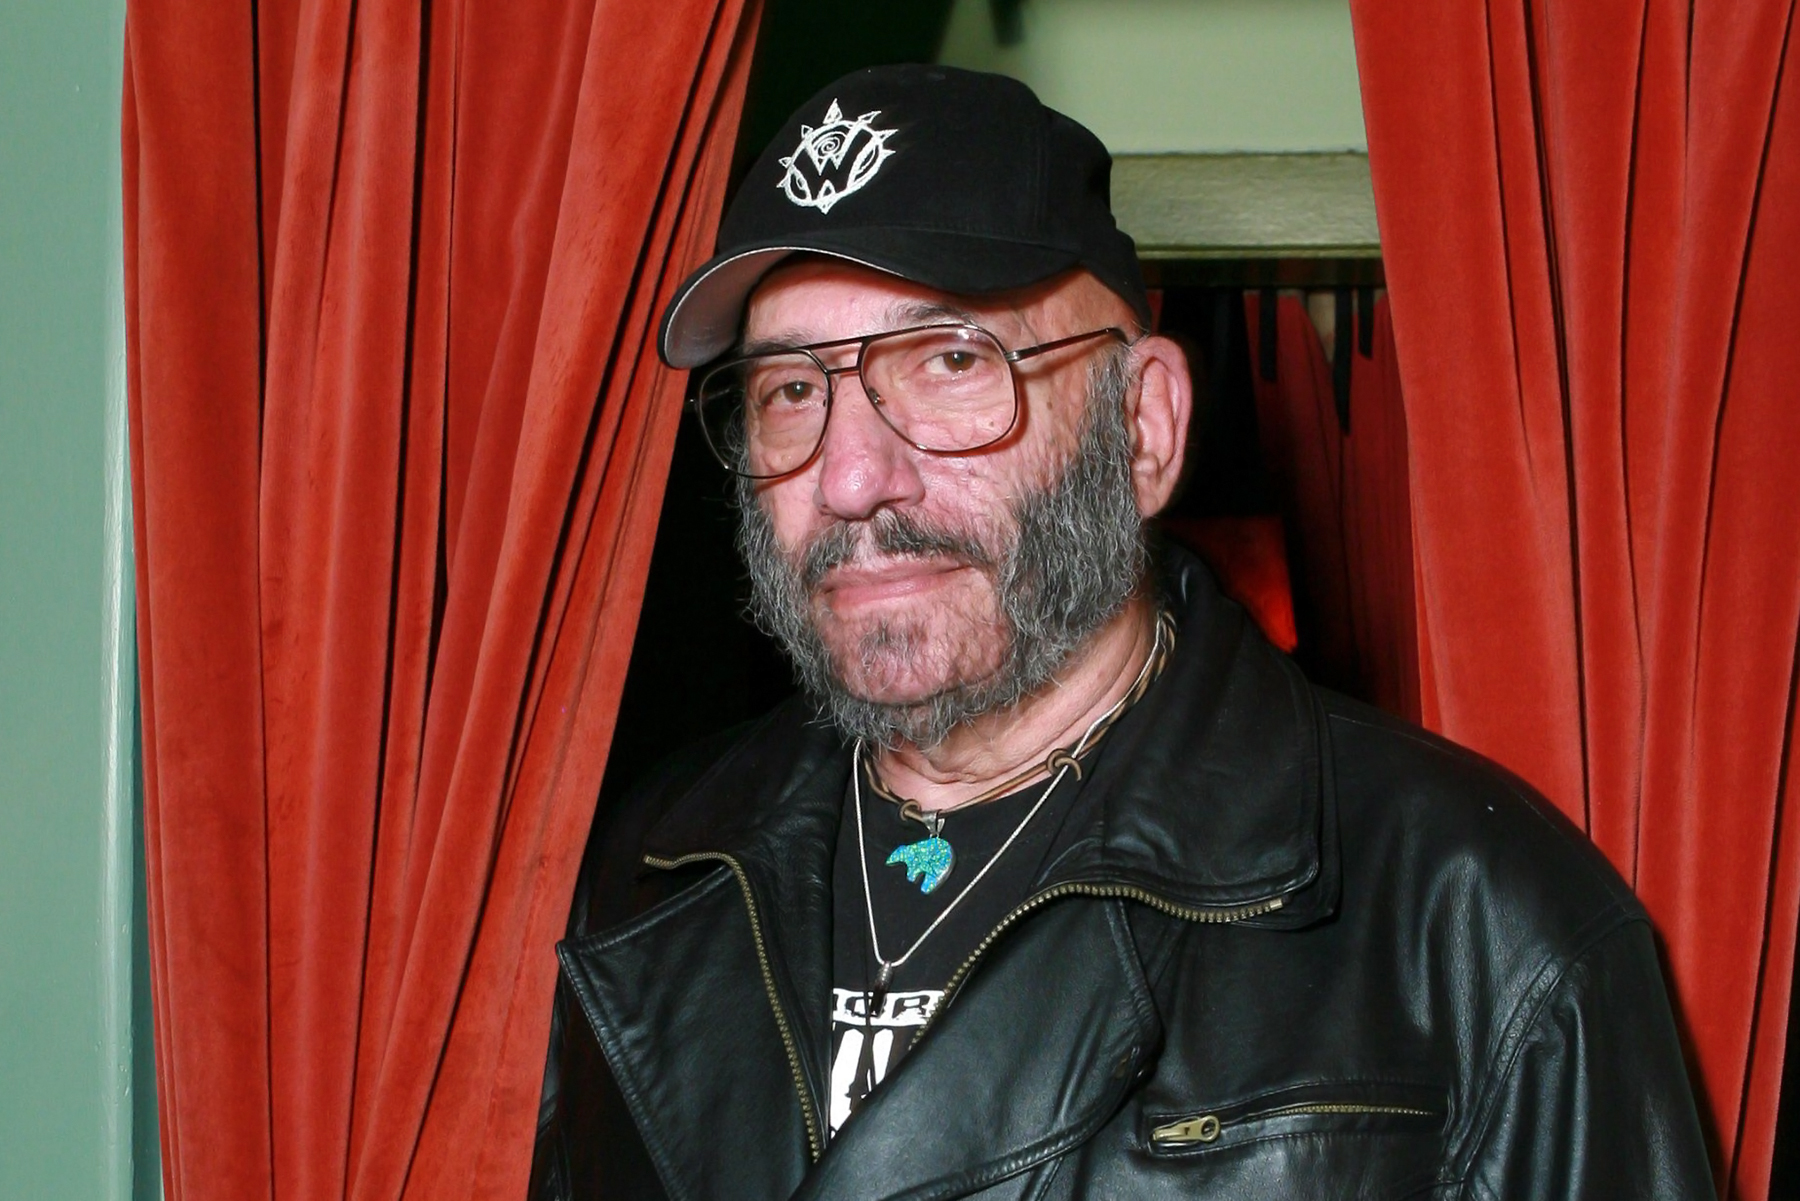 Sid Haig, Intimidating Character Actor and 'House of 1000 Corpses' Star, Dead at 80